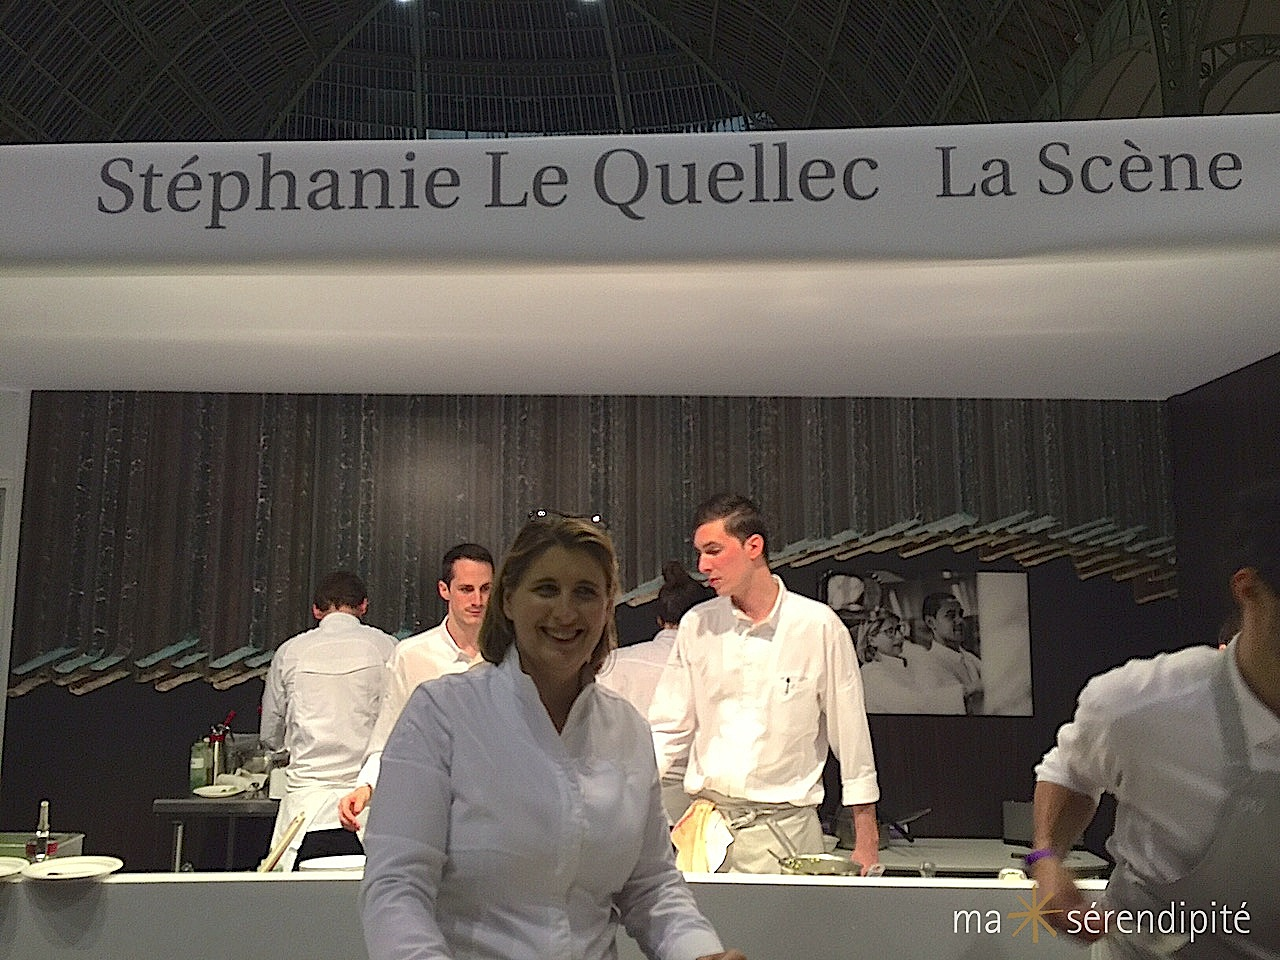 TASTE-OF-PARIS-2015_Stephanie-Le-Quellec_La-Scene-2_MS